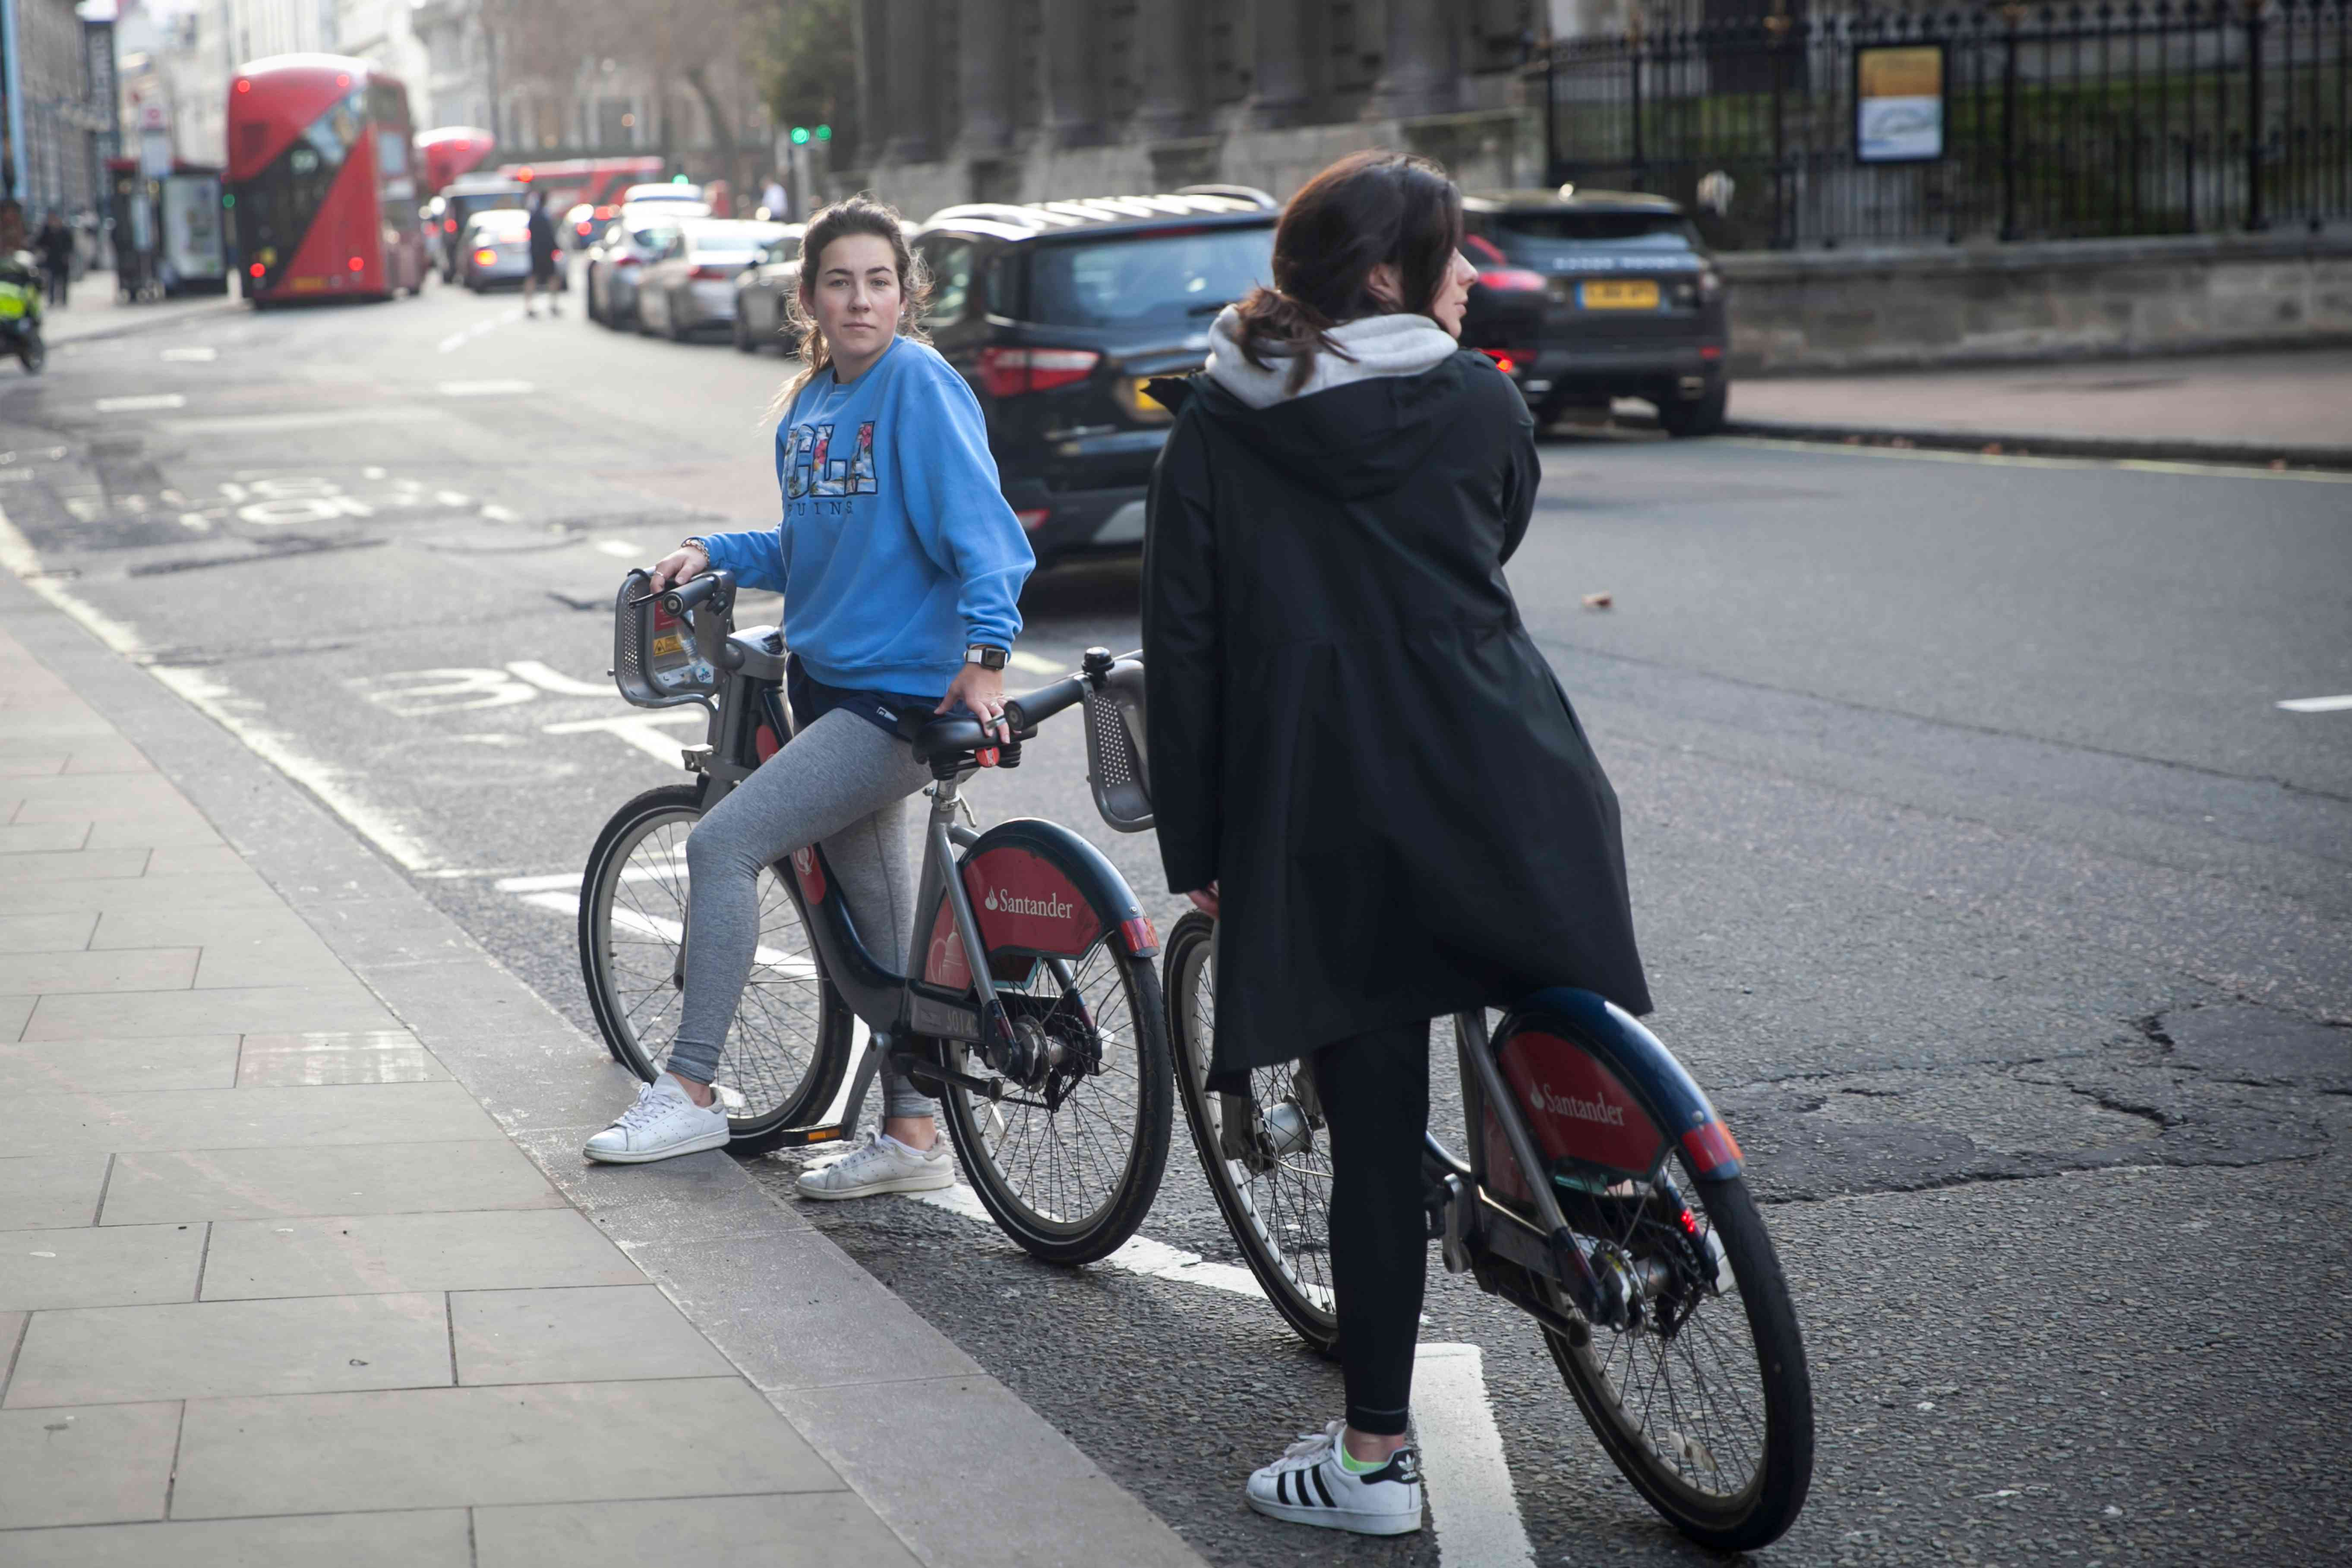 Young women on bikes chat on street in London surrounded by cars and buses